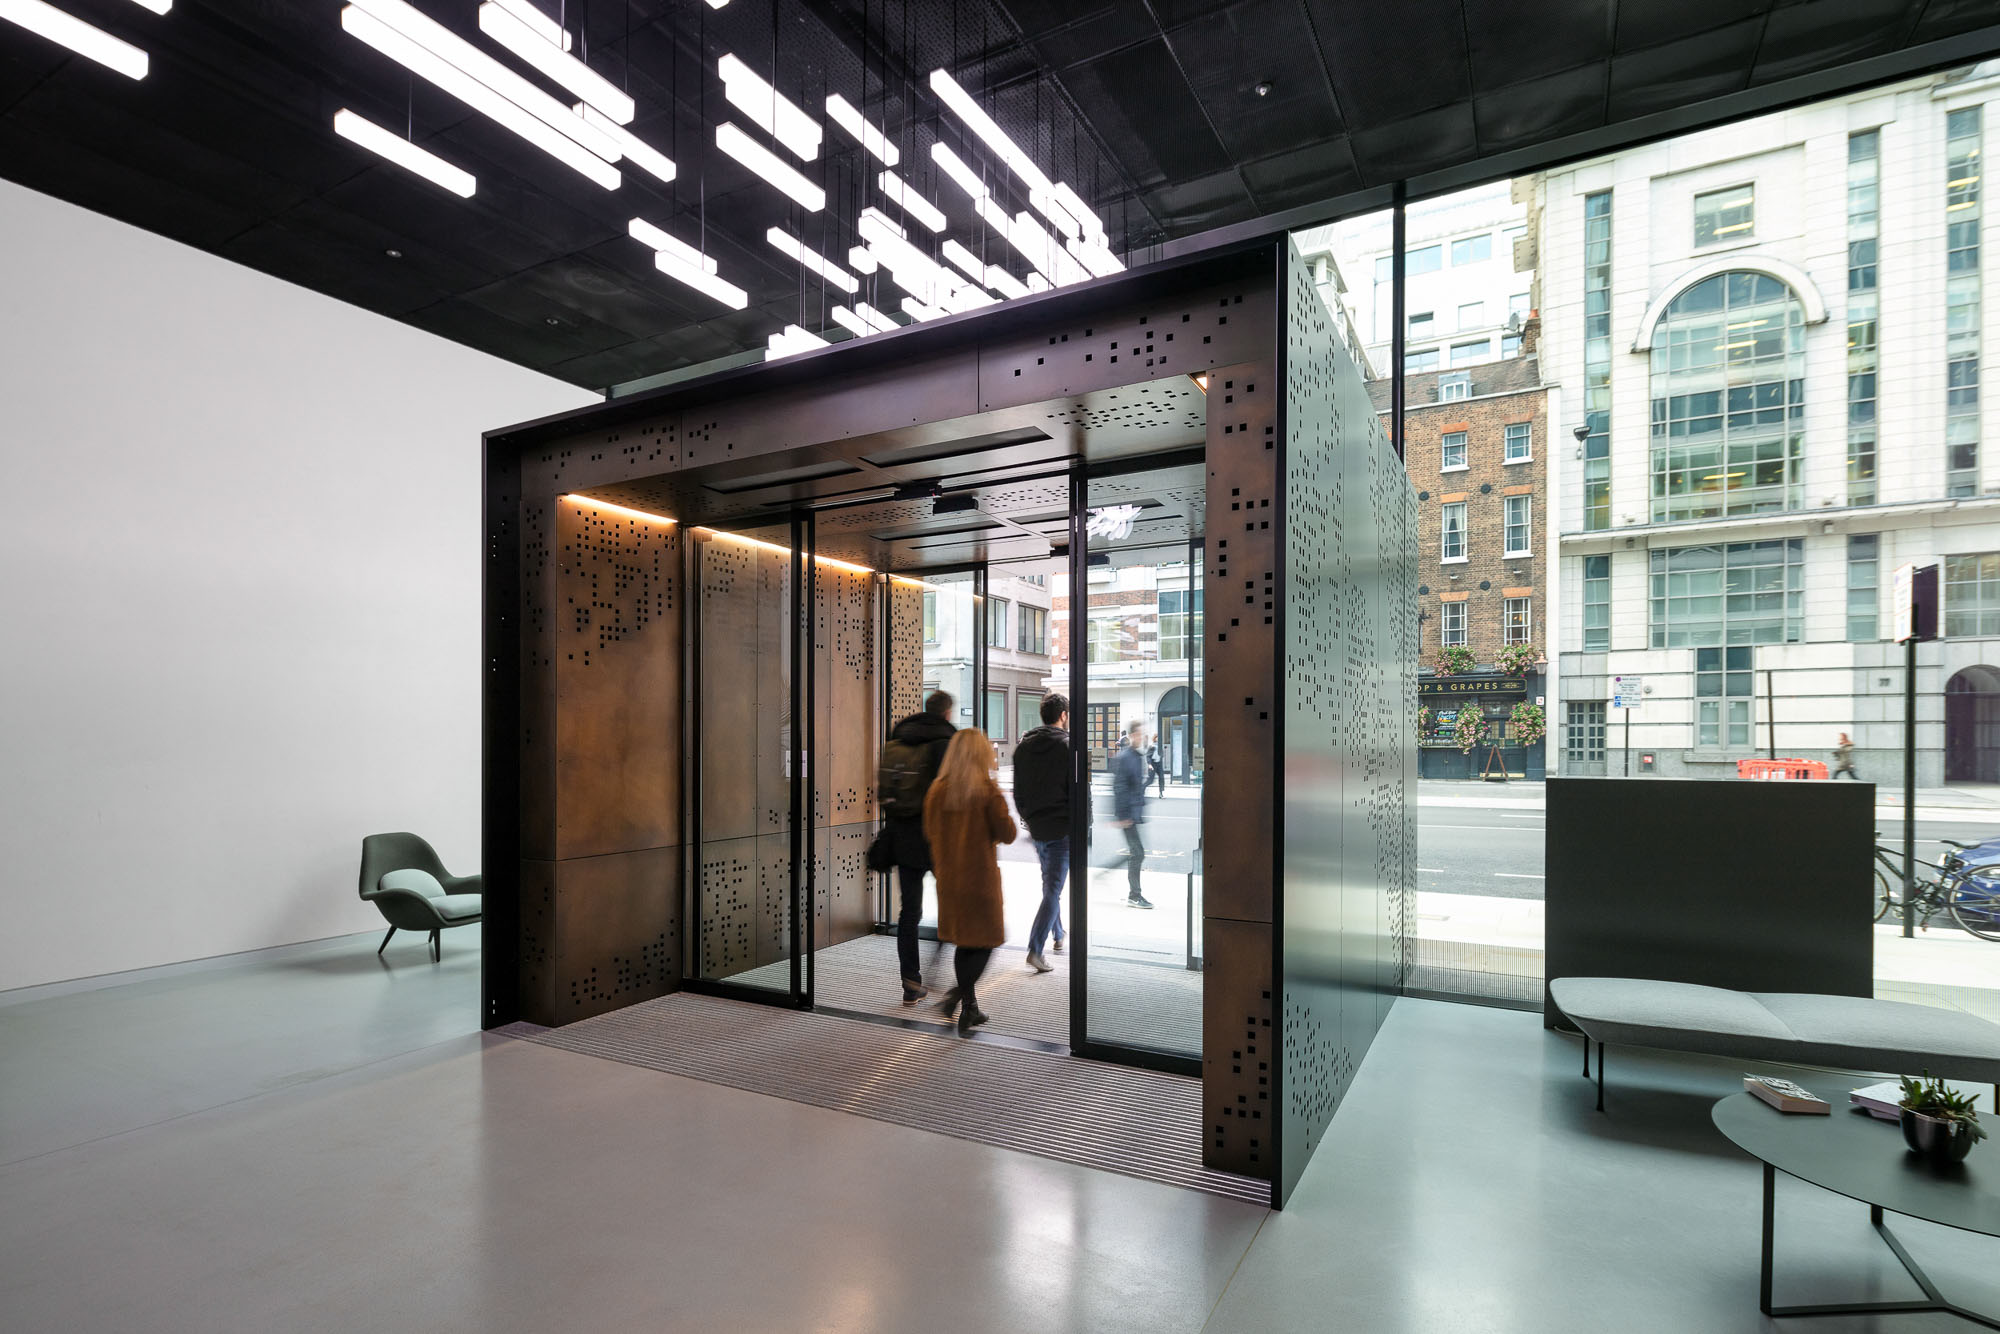 Architectural image of an office hallway with glass doors and windows